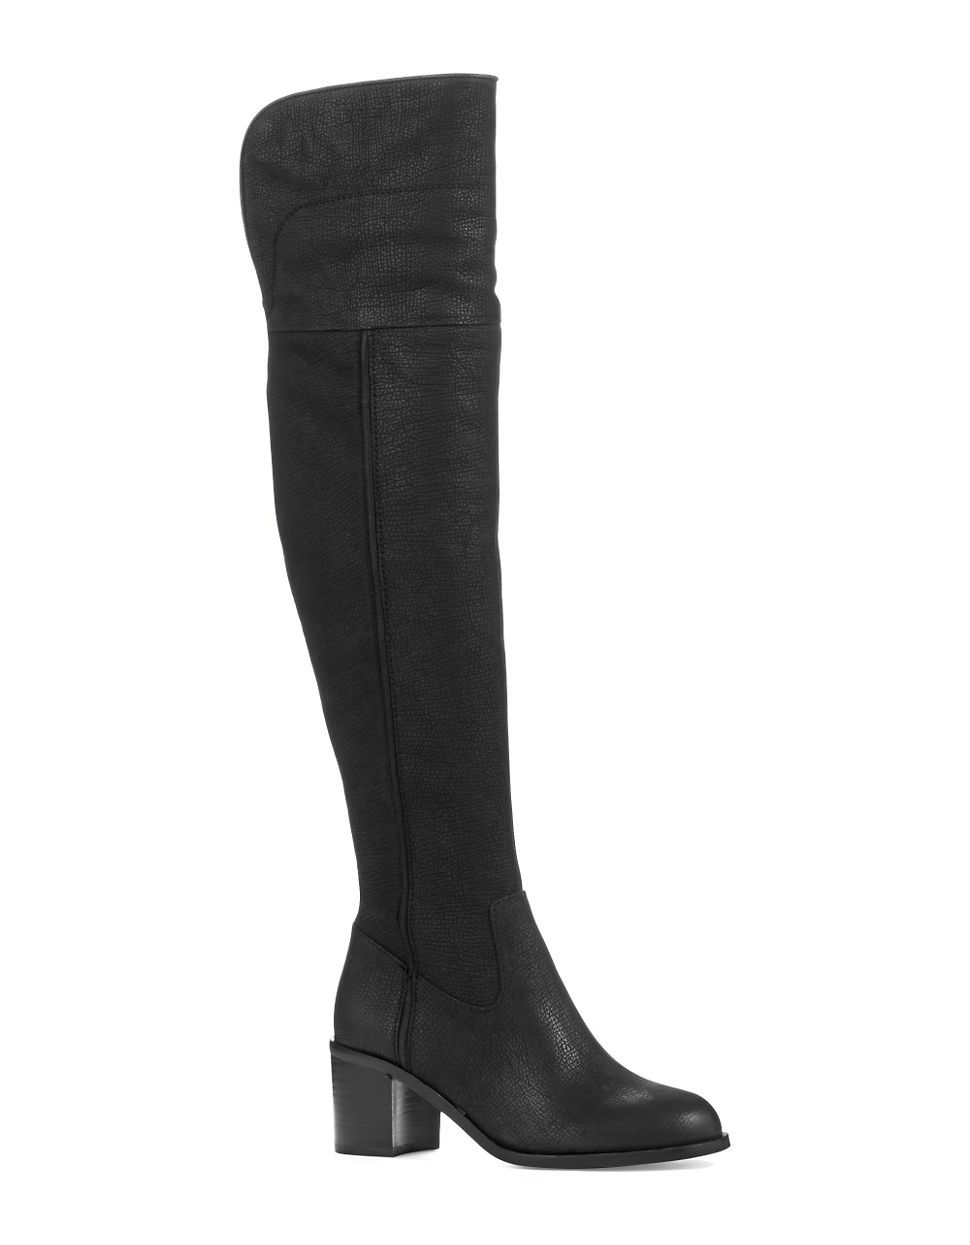 3c6e580073c Joplin Over The Knee Boots